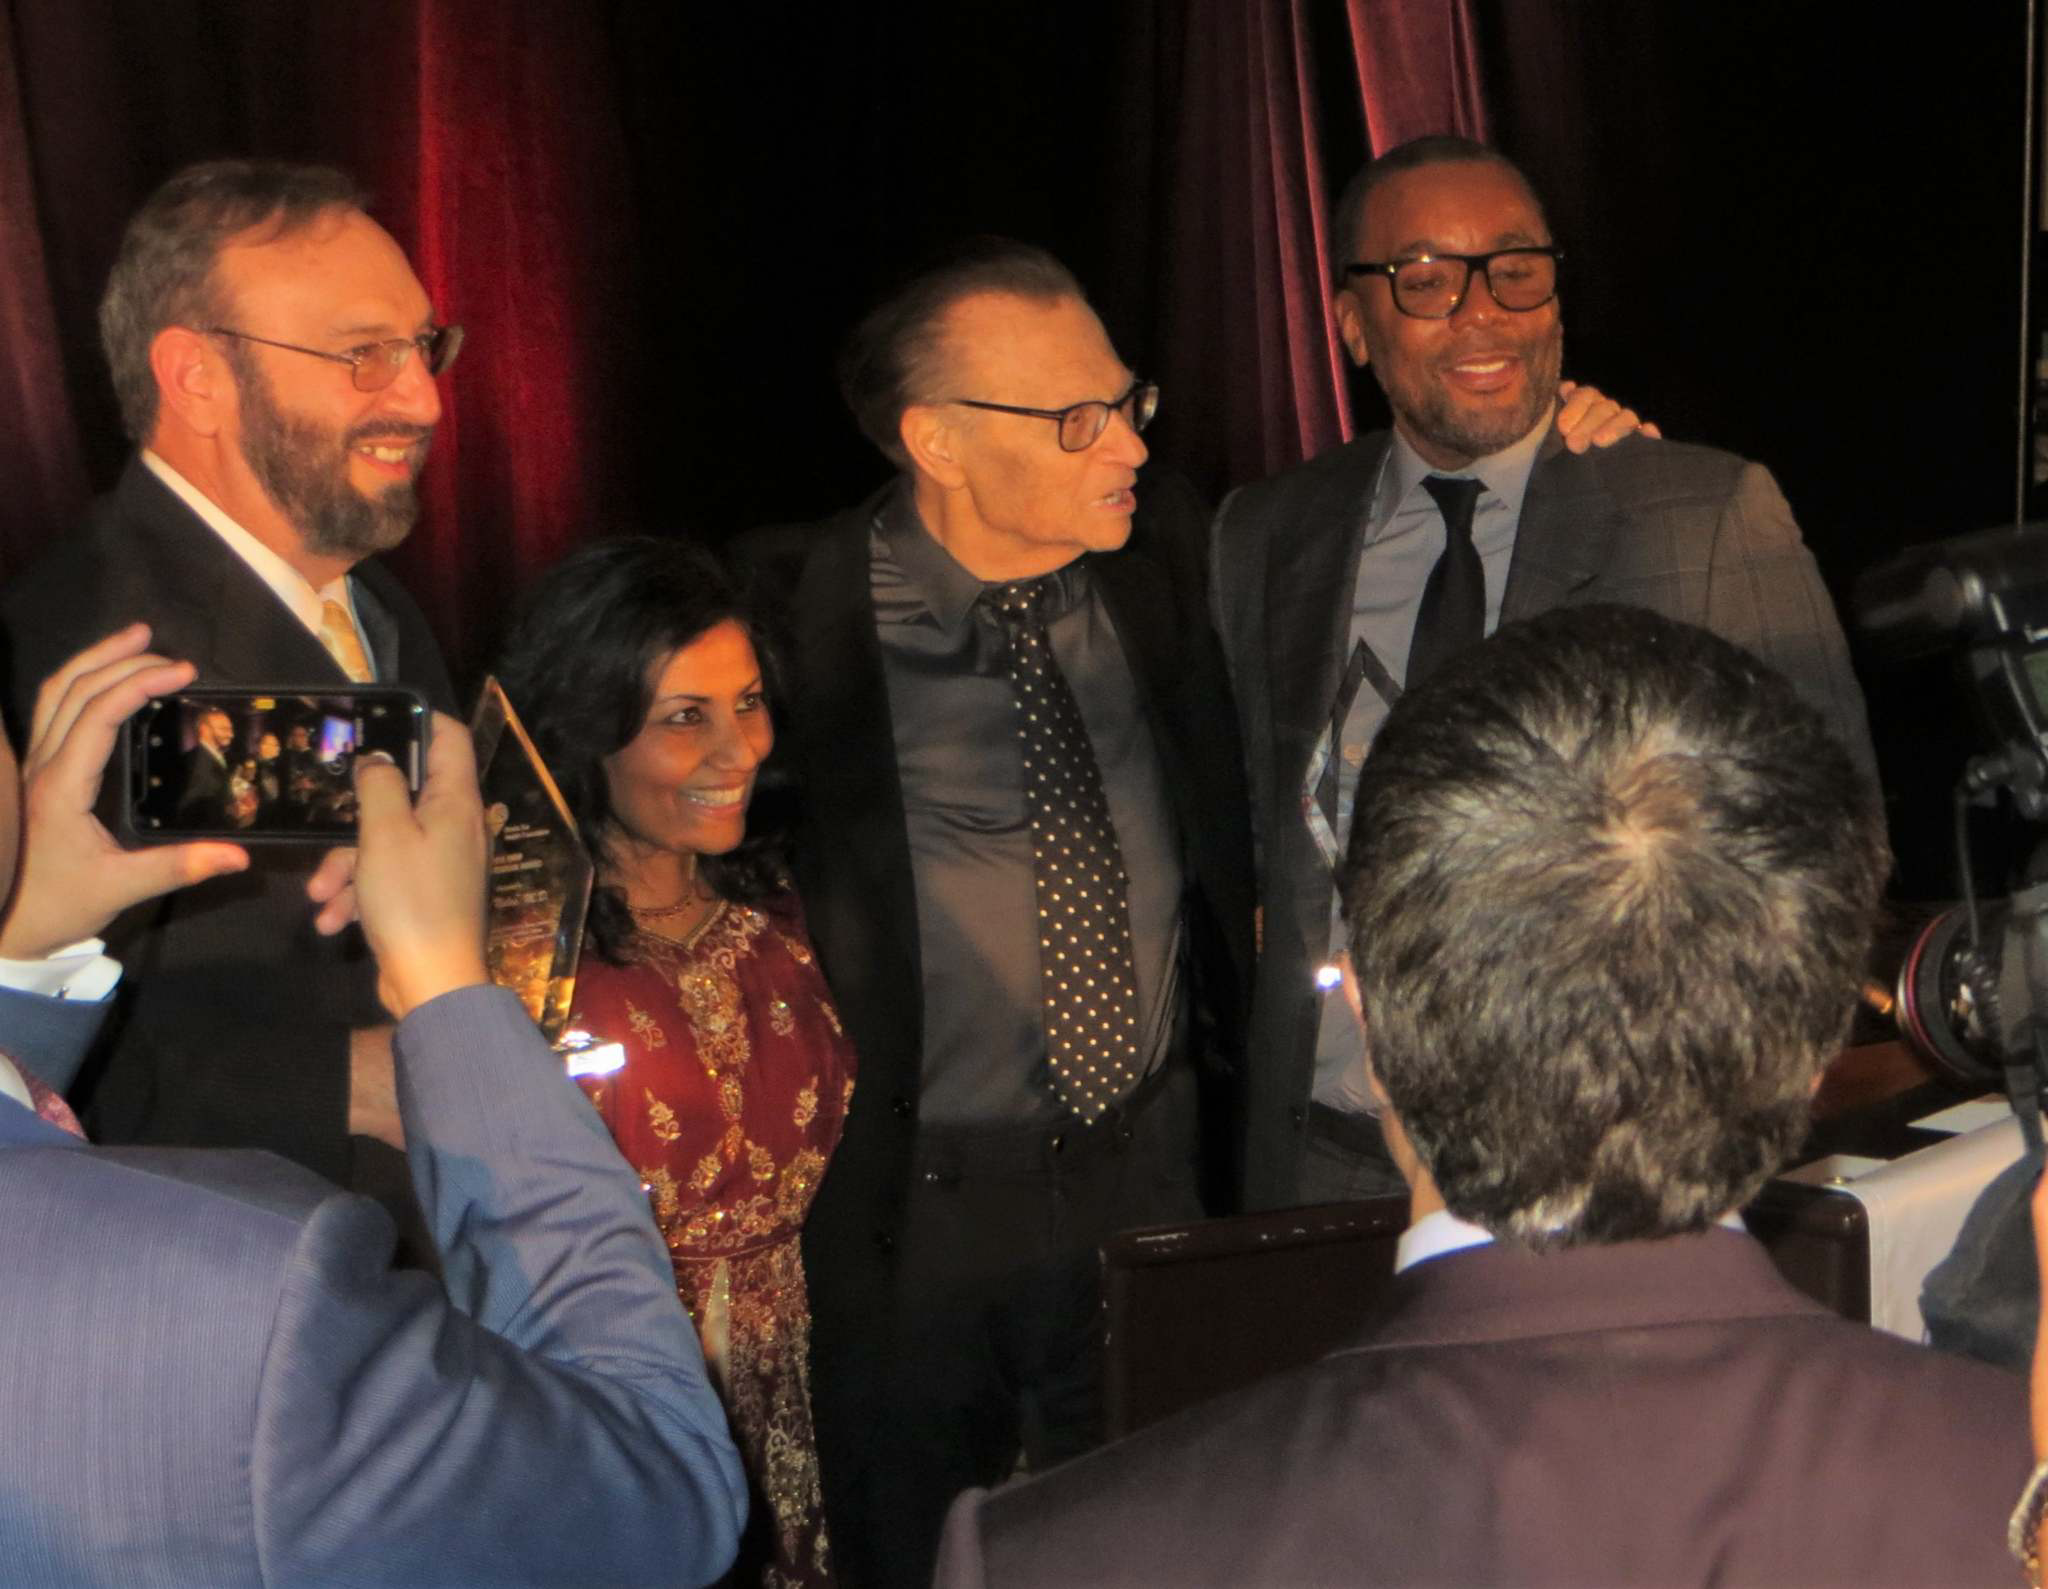 Peter with Larry King, Lee Michaels and Sheila Kar, MD